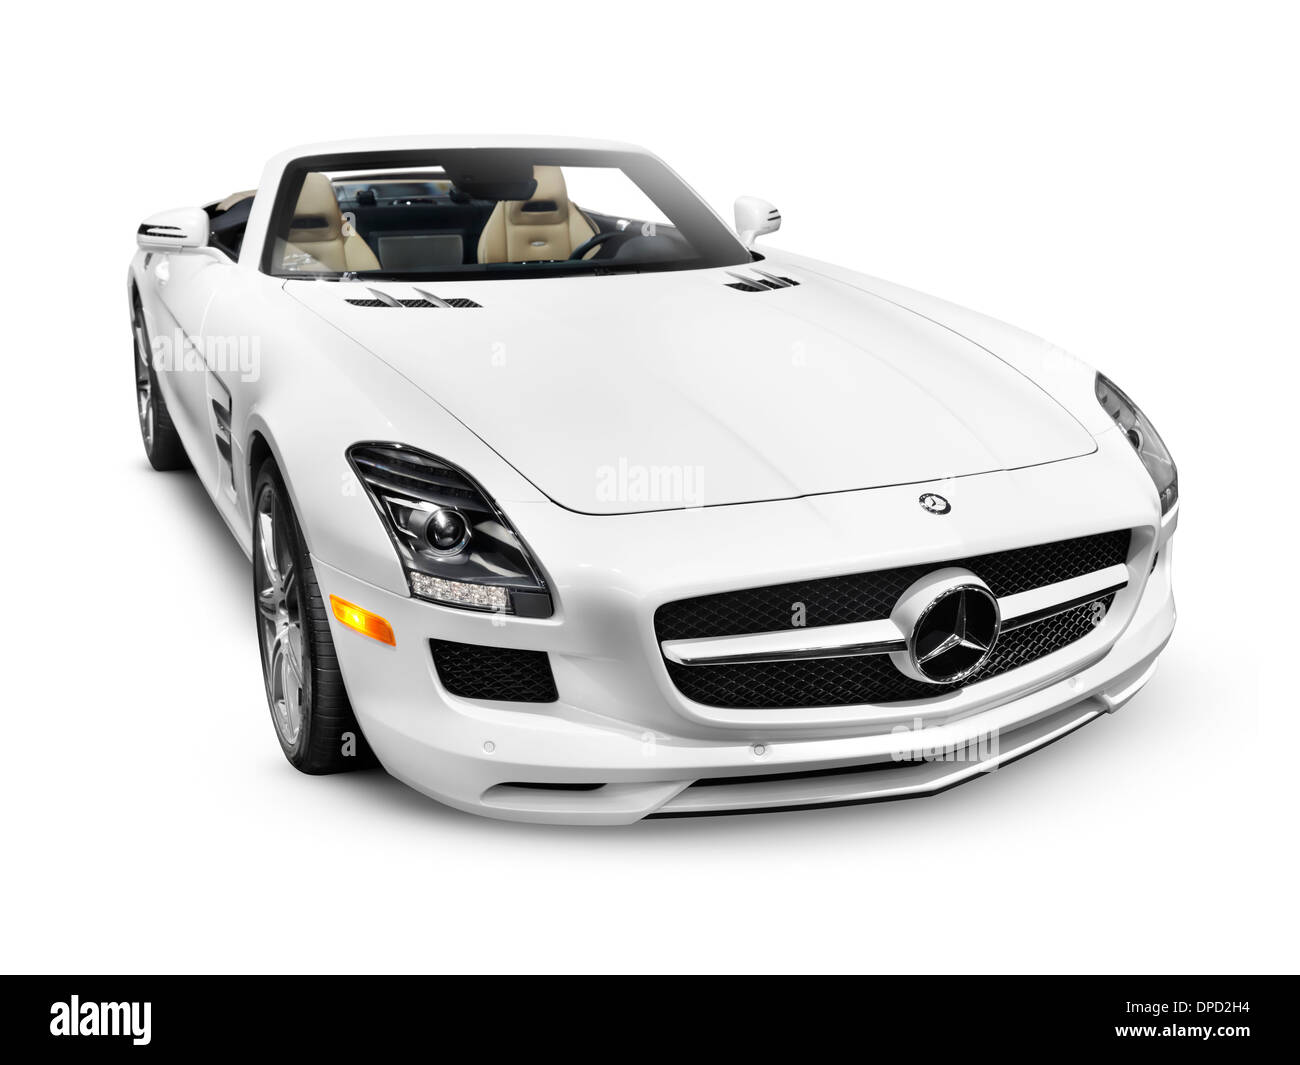 Stock Photo 2012 Mercedes Benz Sls Amg Gt Roadster Sports Car Isolated With Clipping 65440960 on c63 amg convertible